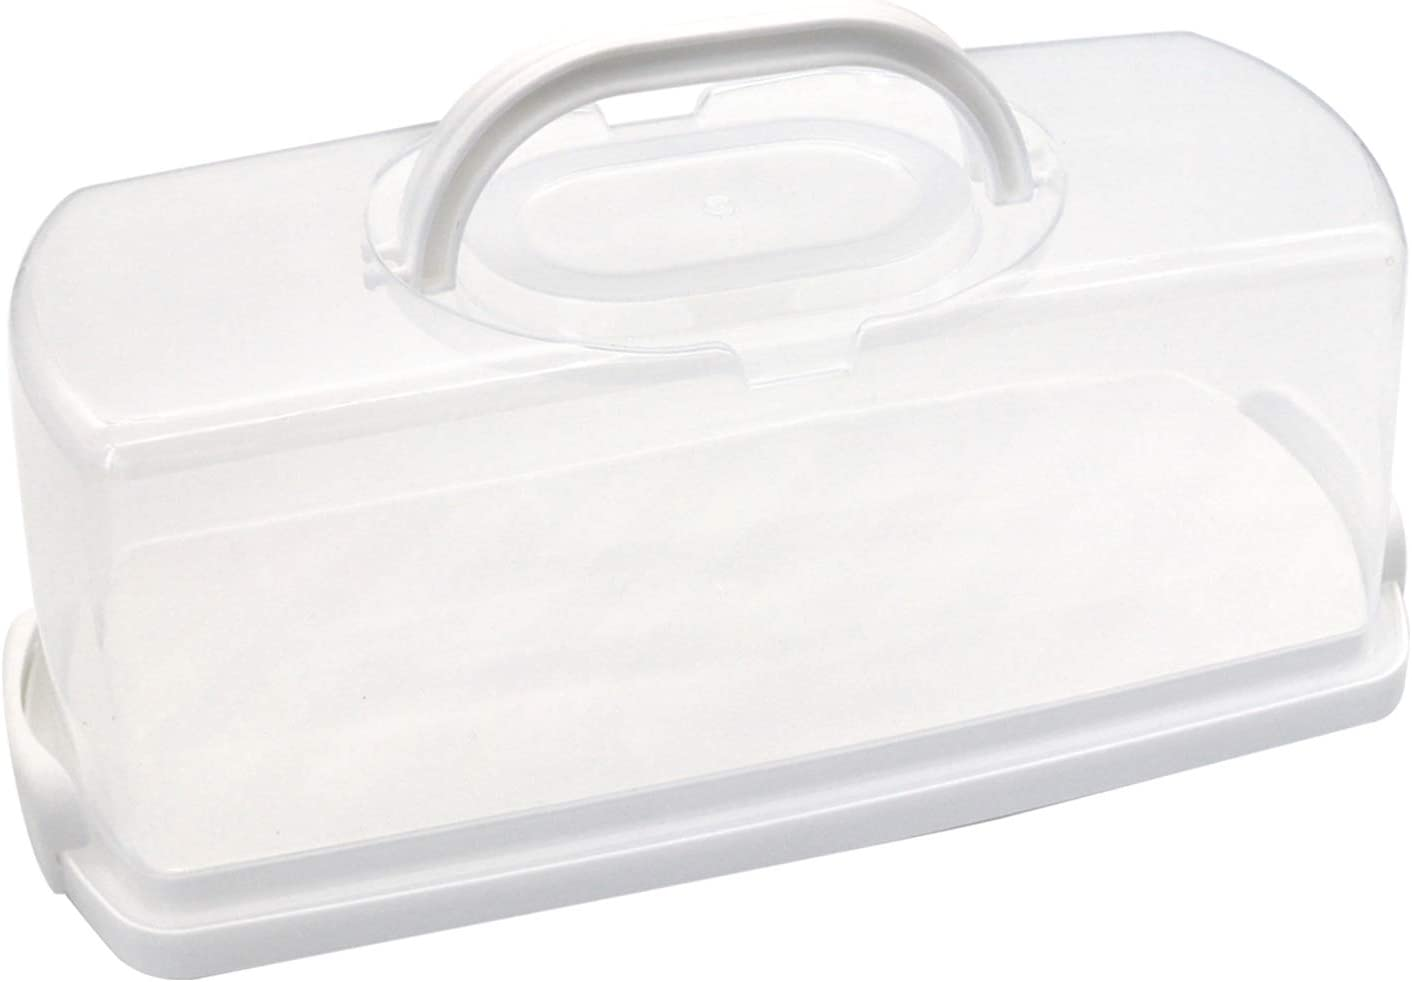 25% OFF FEOOWV Portable Wholesale Plastic Rectangular Loaf Transpar Bread Box with